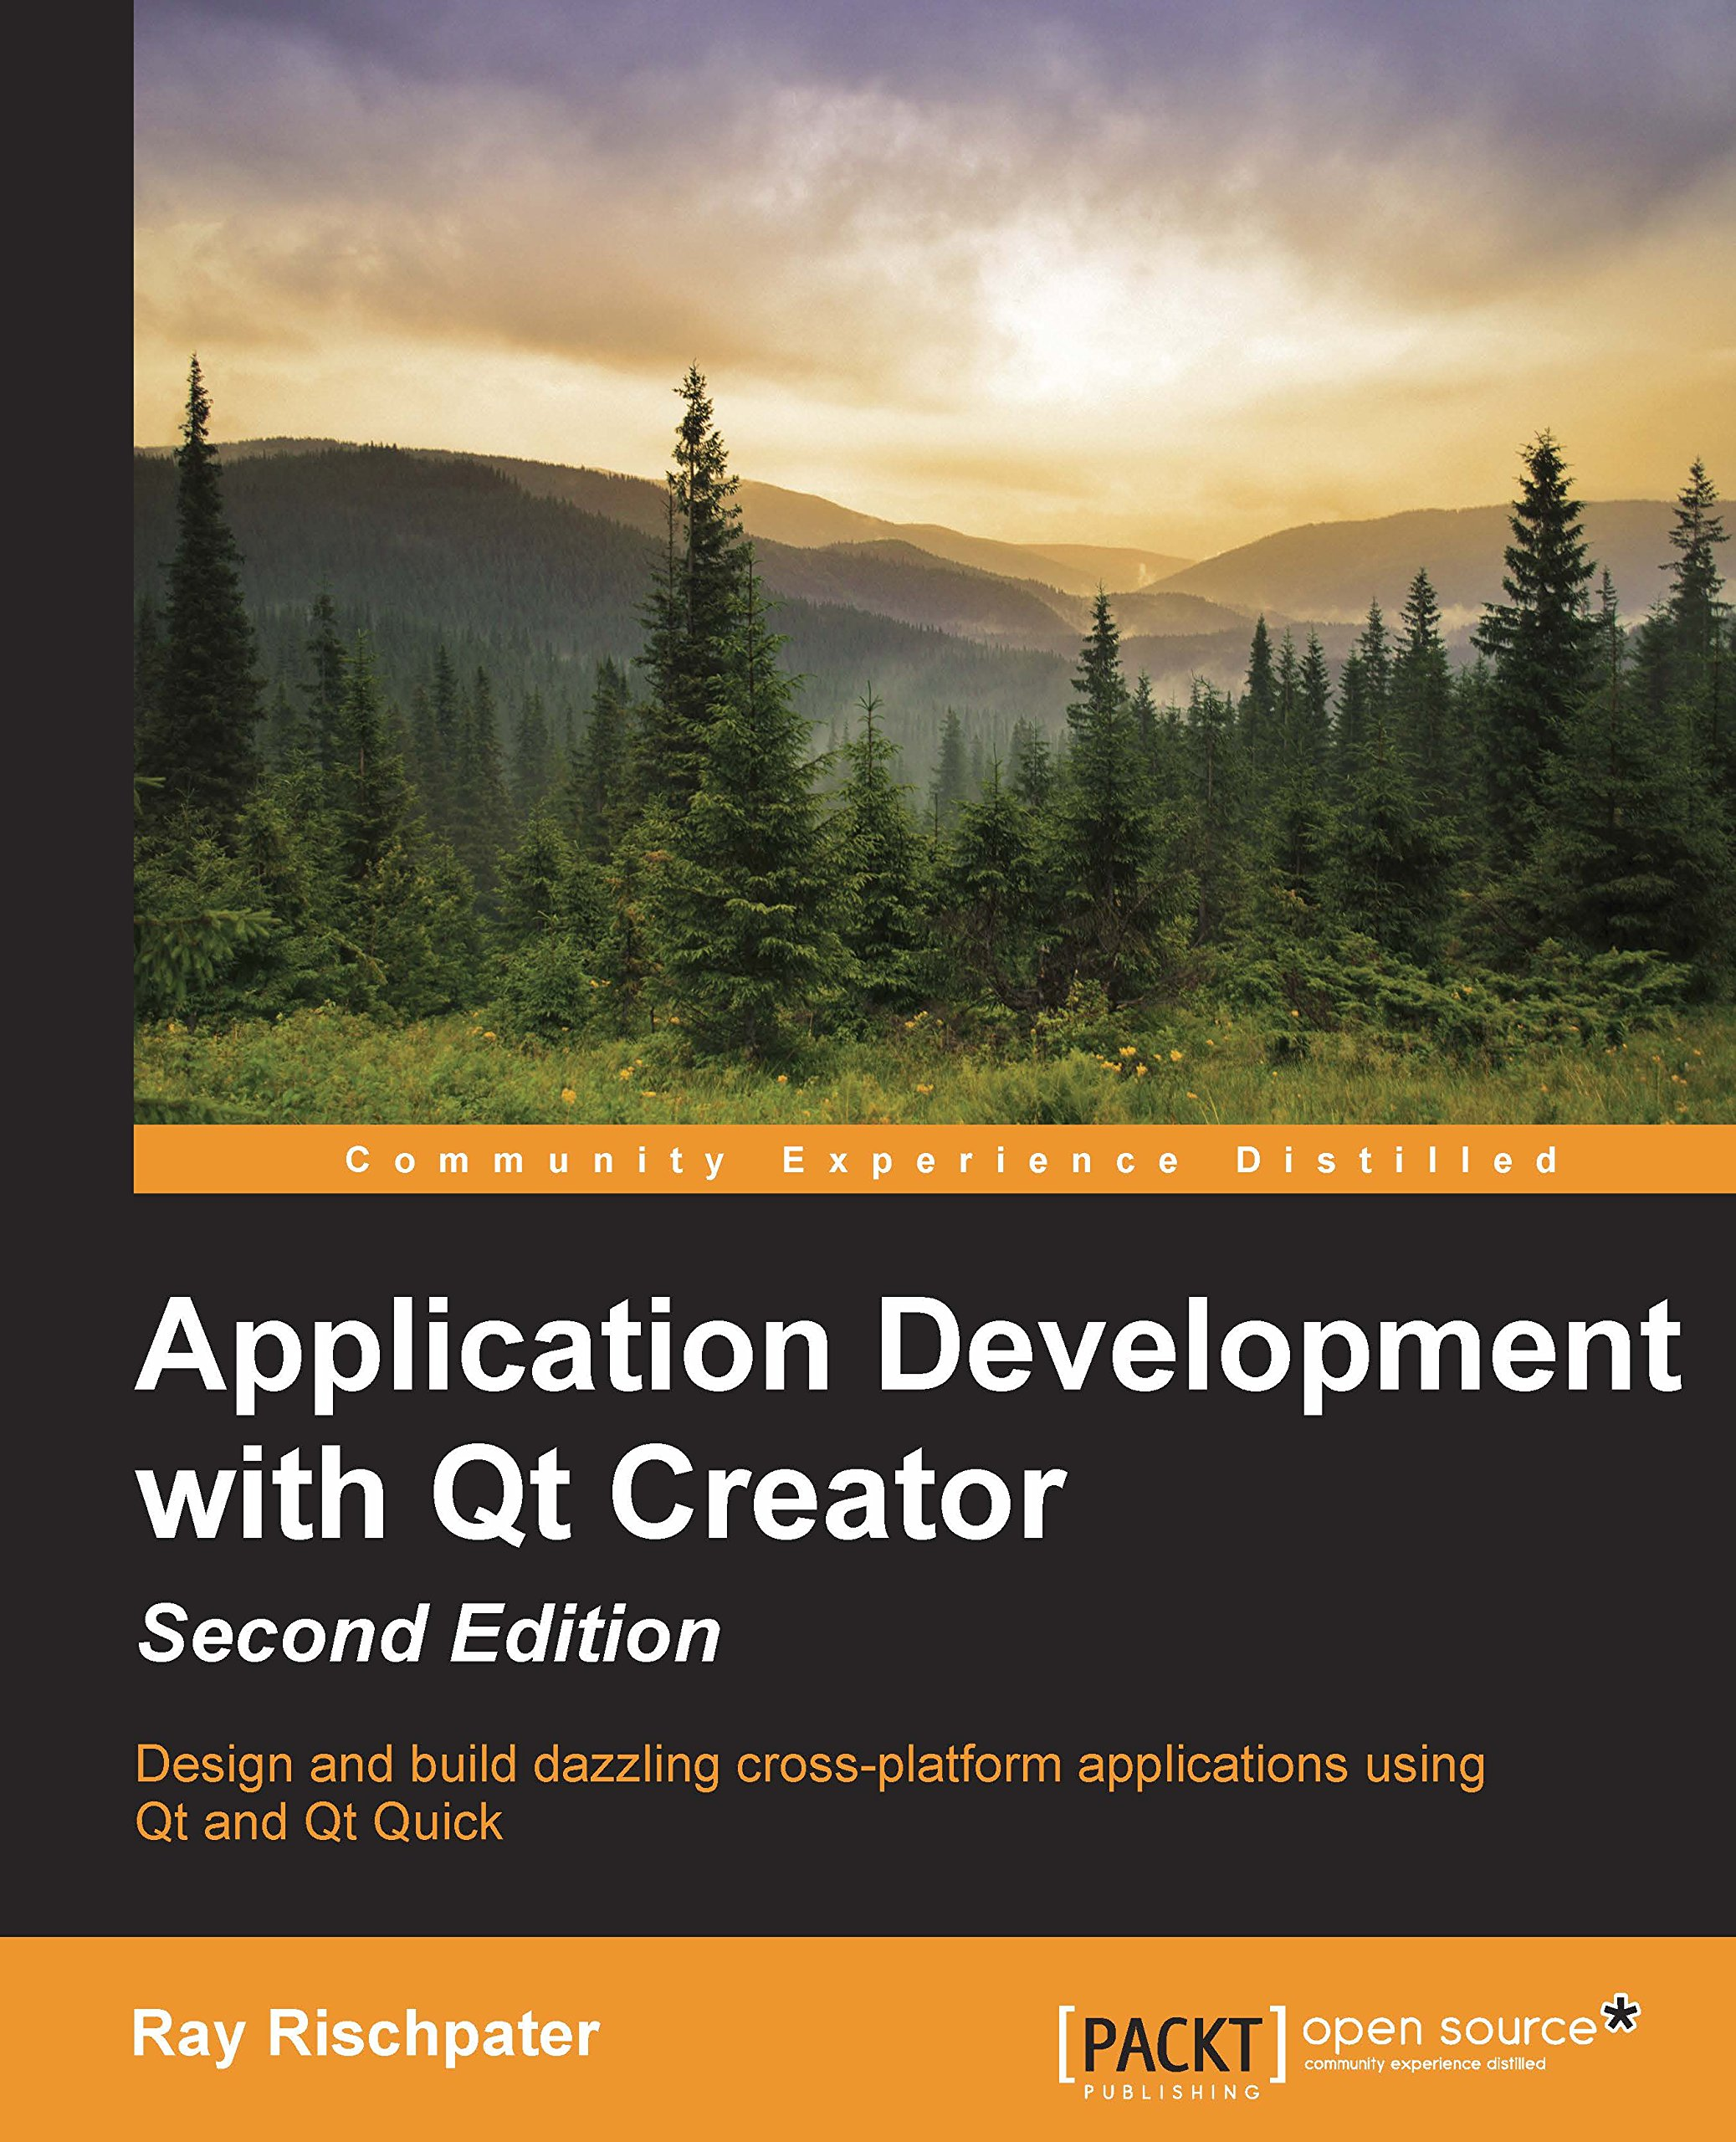 Download Application Development With Qt Creator - Second Edition 